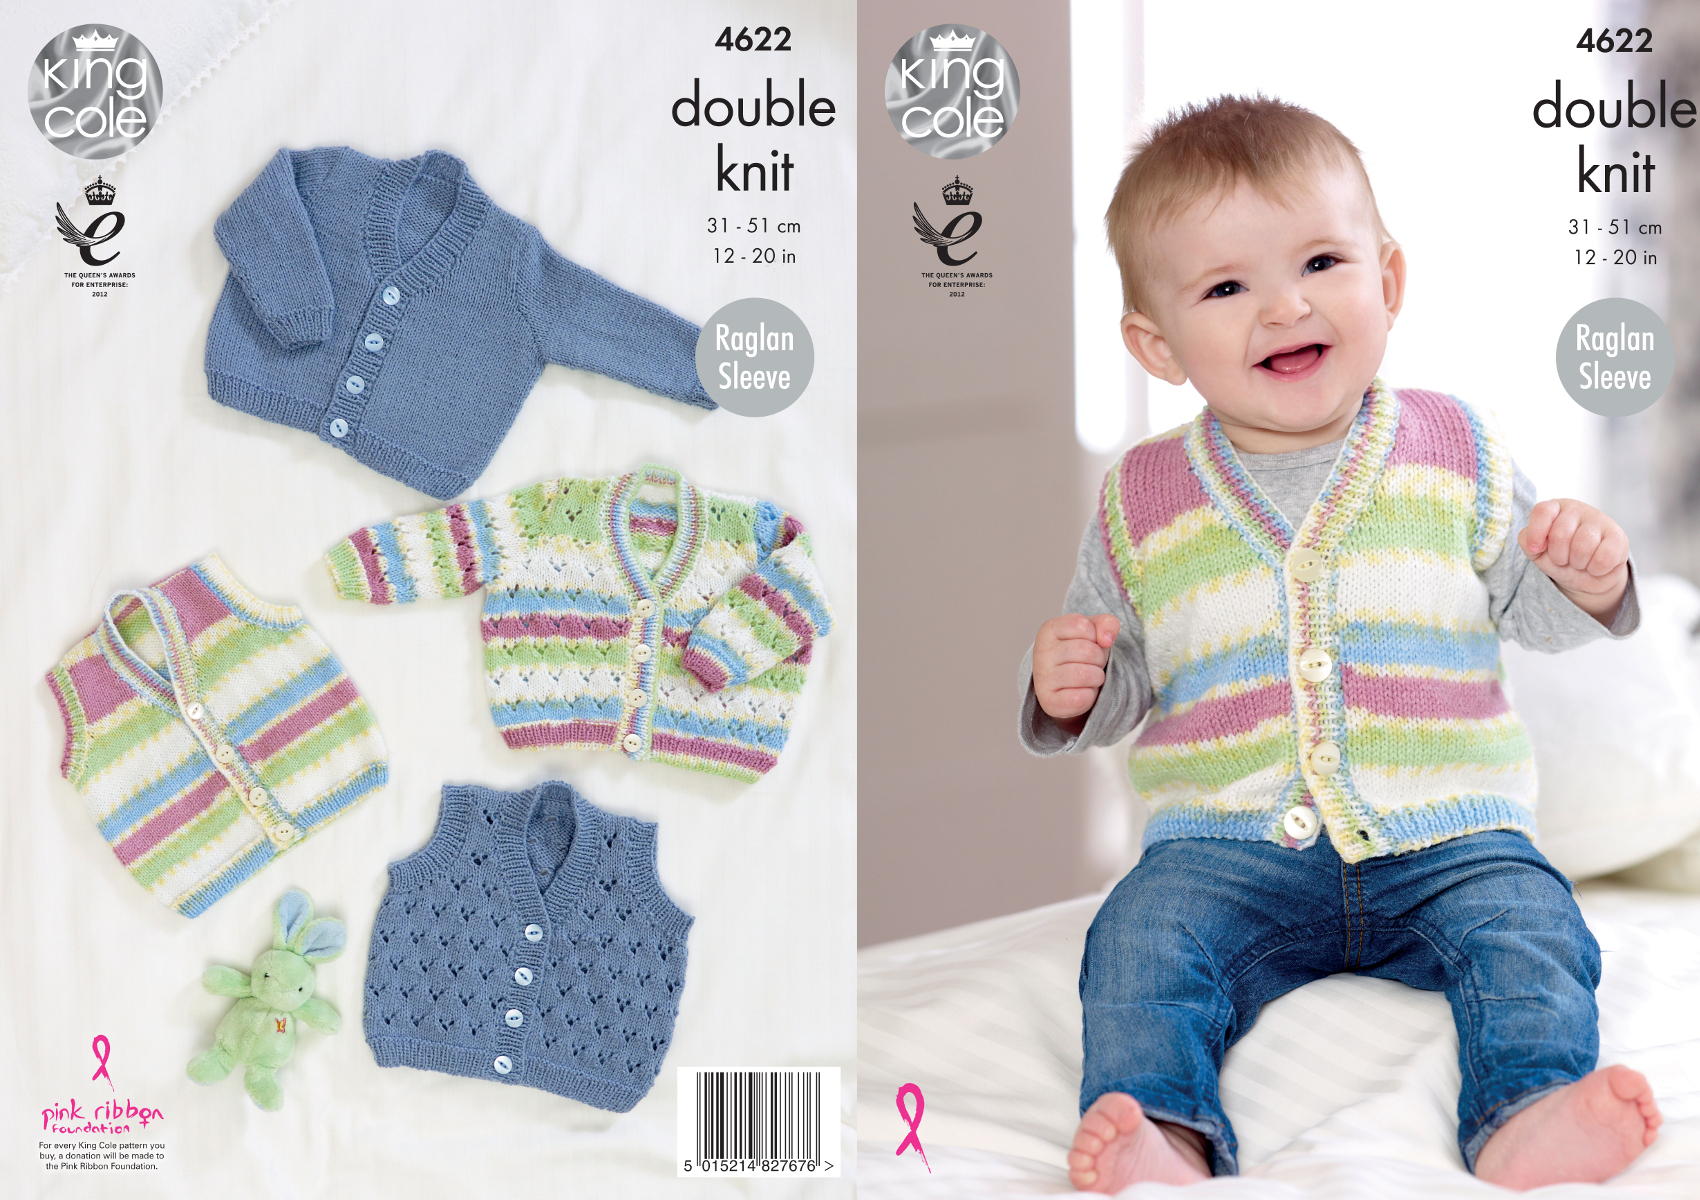 Lace or stocking stitch cardigan waistcoat baby knitting pattern lace or stocking stitch cardigan waistcoat baby knitting pattern king cole 4622 bankloansurffo Image collections